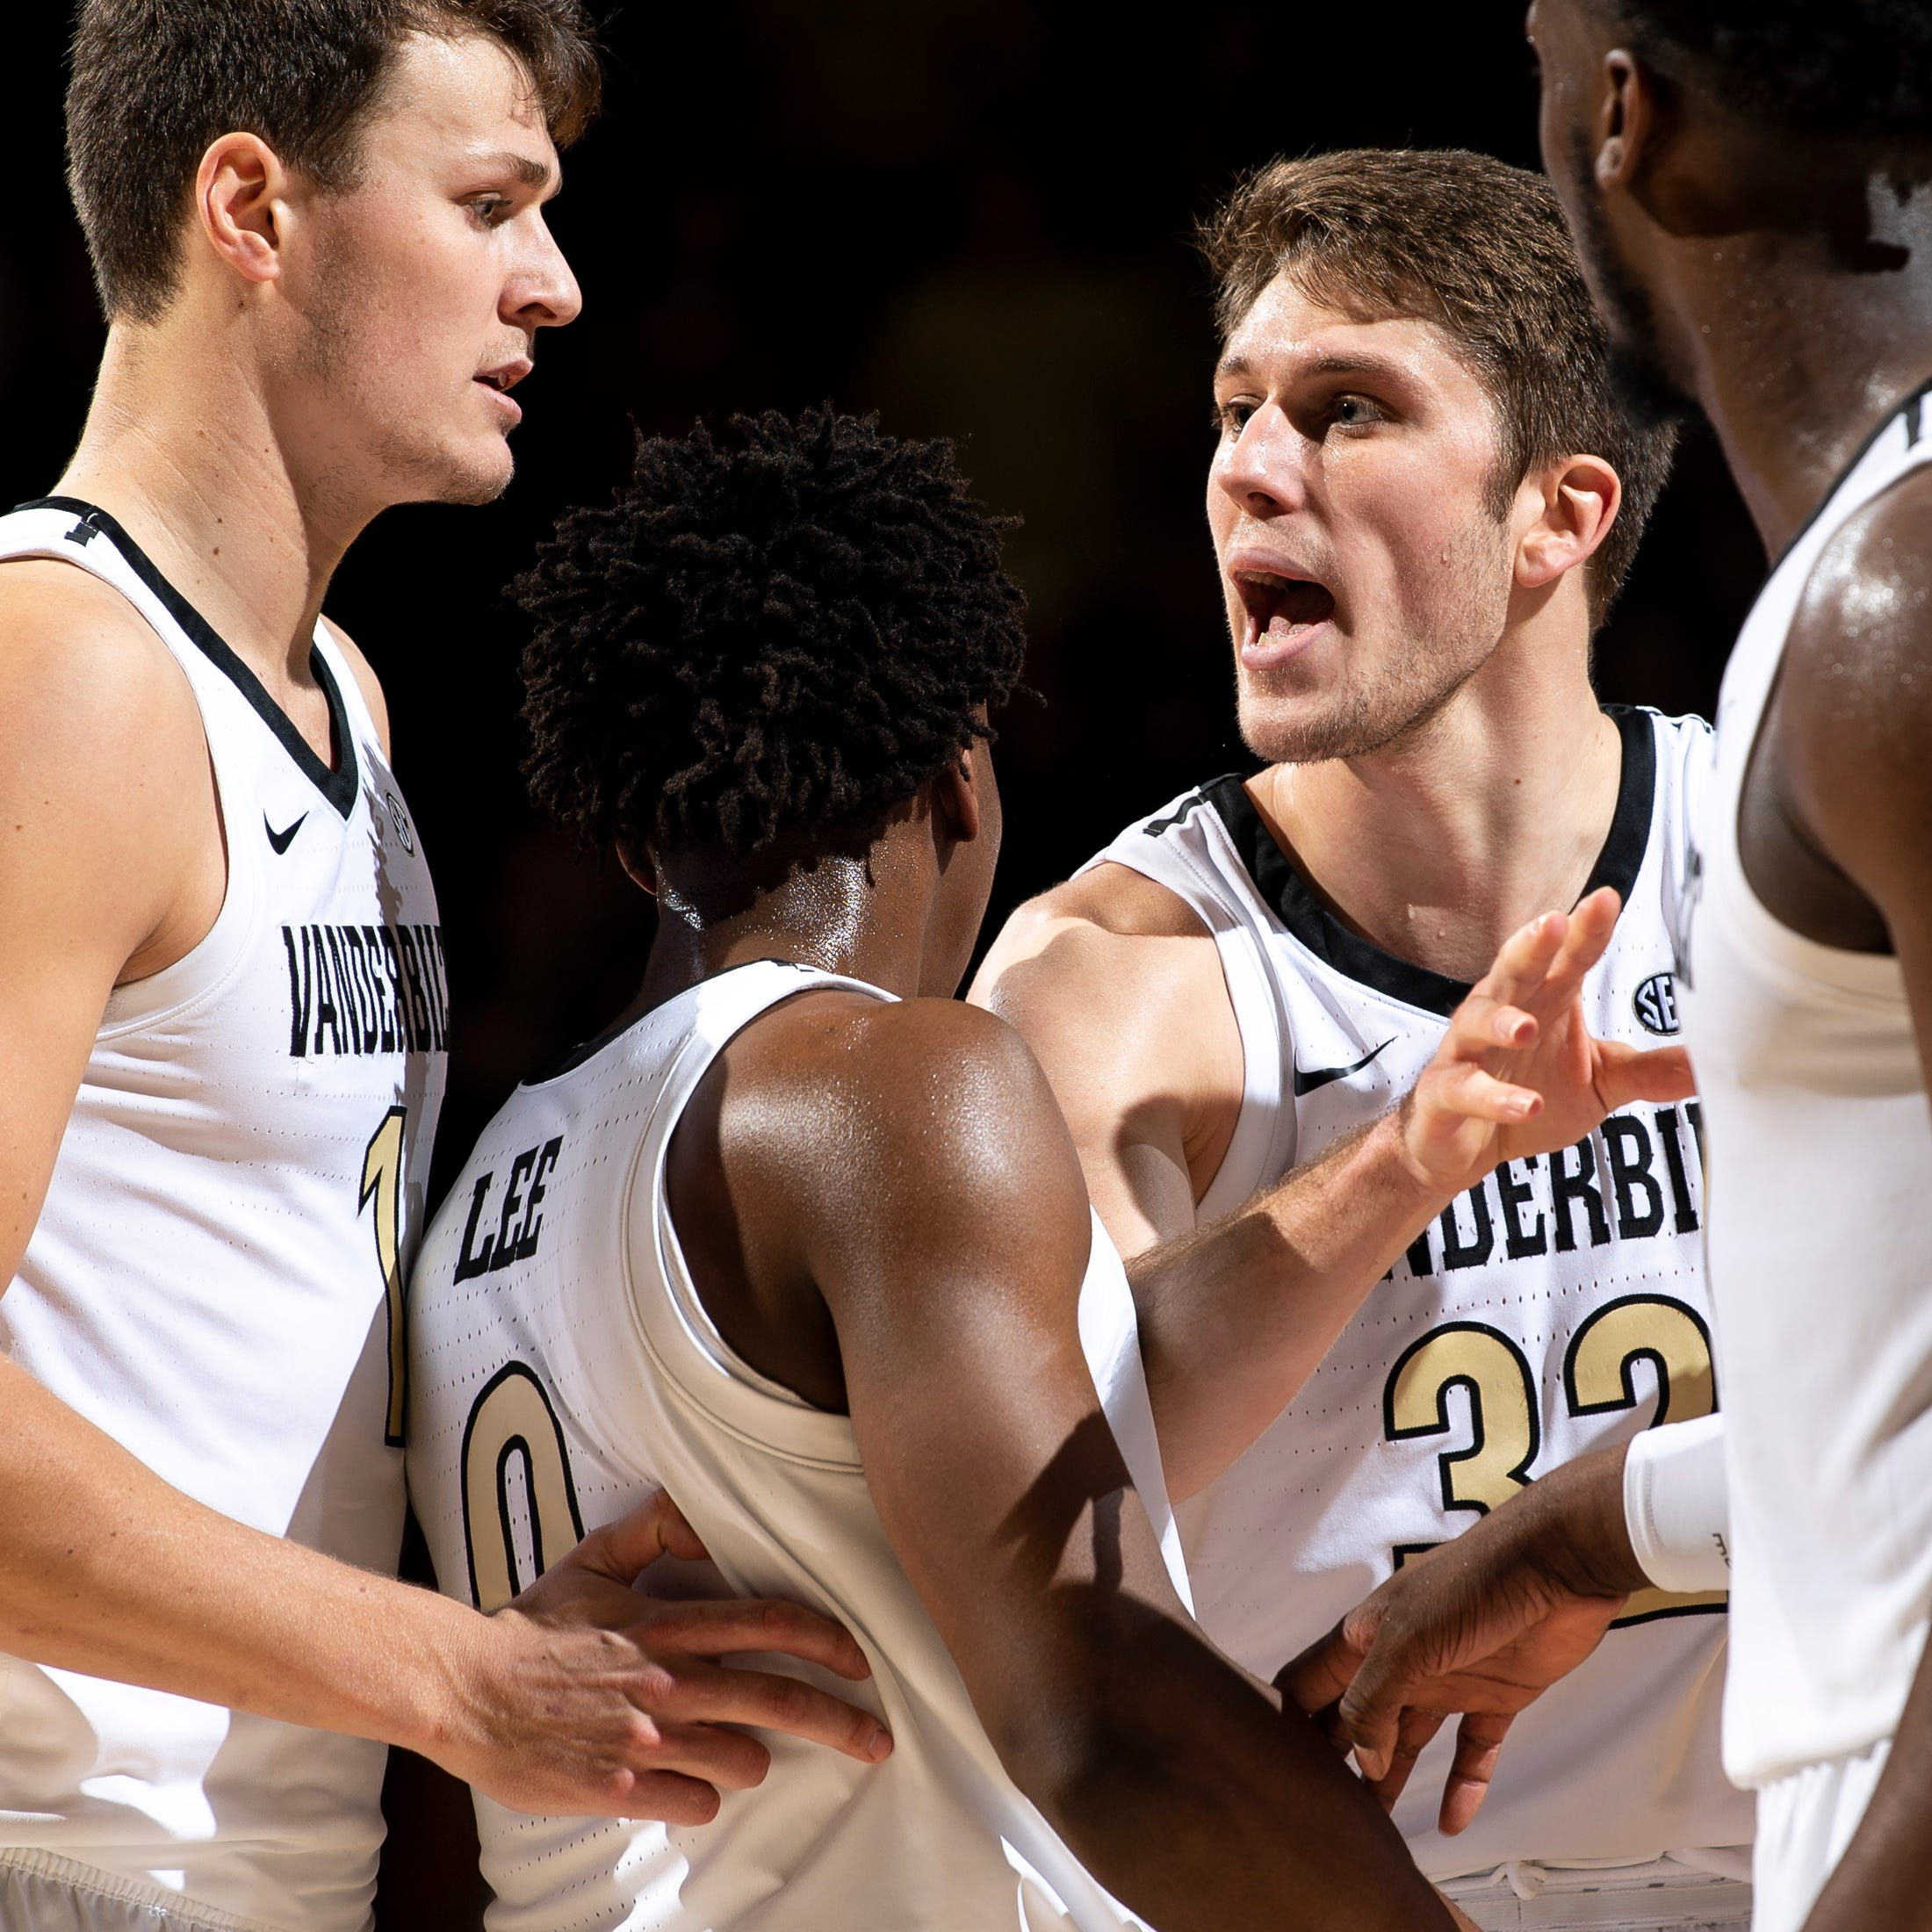 Vanderbilt basketball drops to 0-4 in SEC for first time in program history